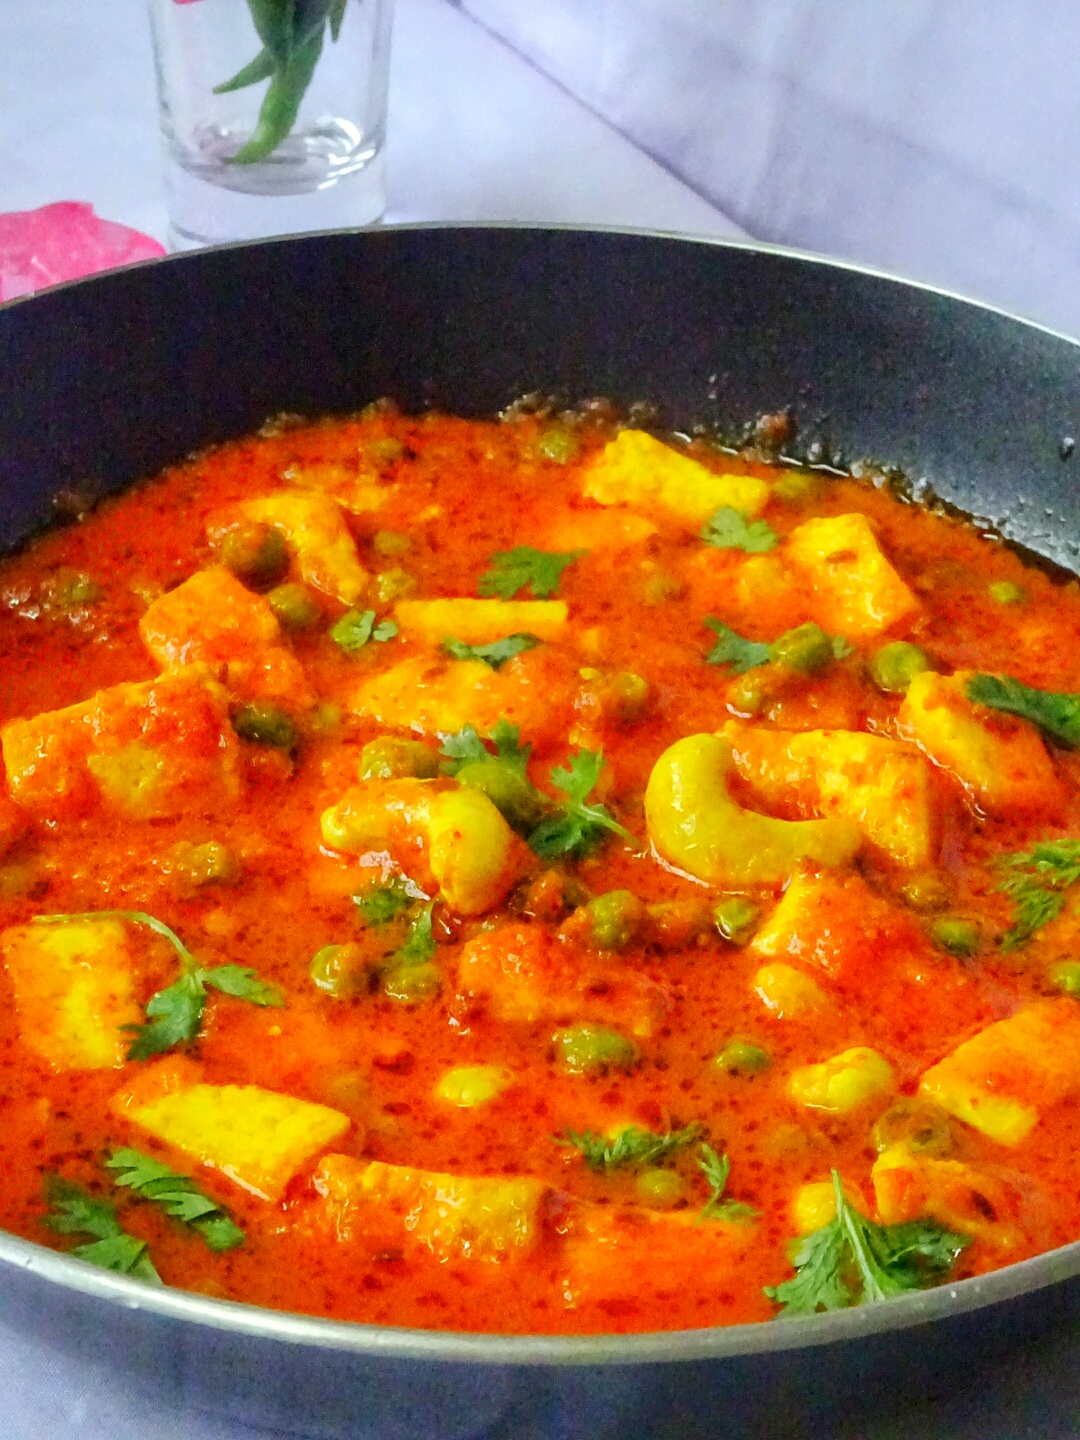 Veg indian cooking matar paneer recipe how to make matar paneer peas and cottage cheese in tomato gravy easy quick mutter paneer recipe no onion no garlic matar paneer recipe forumfinder Gallery